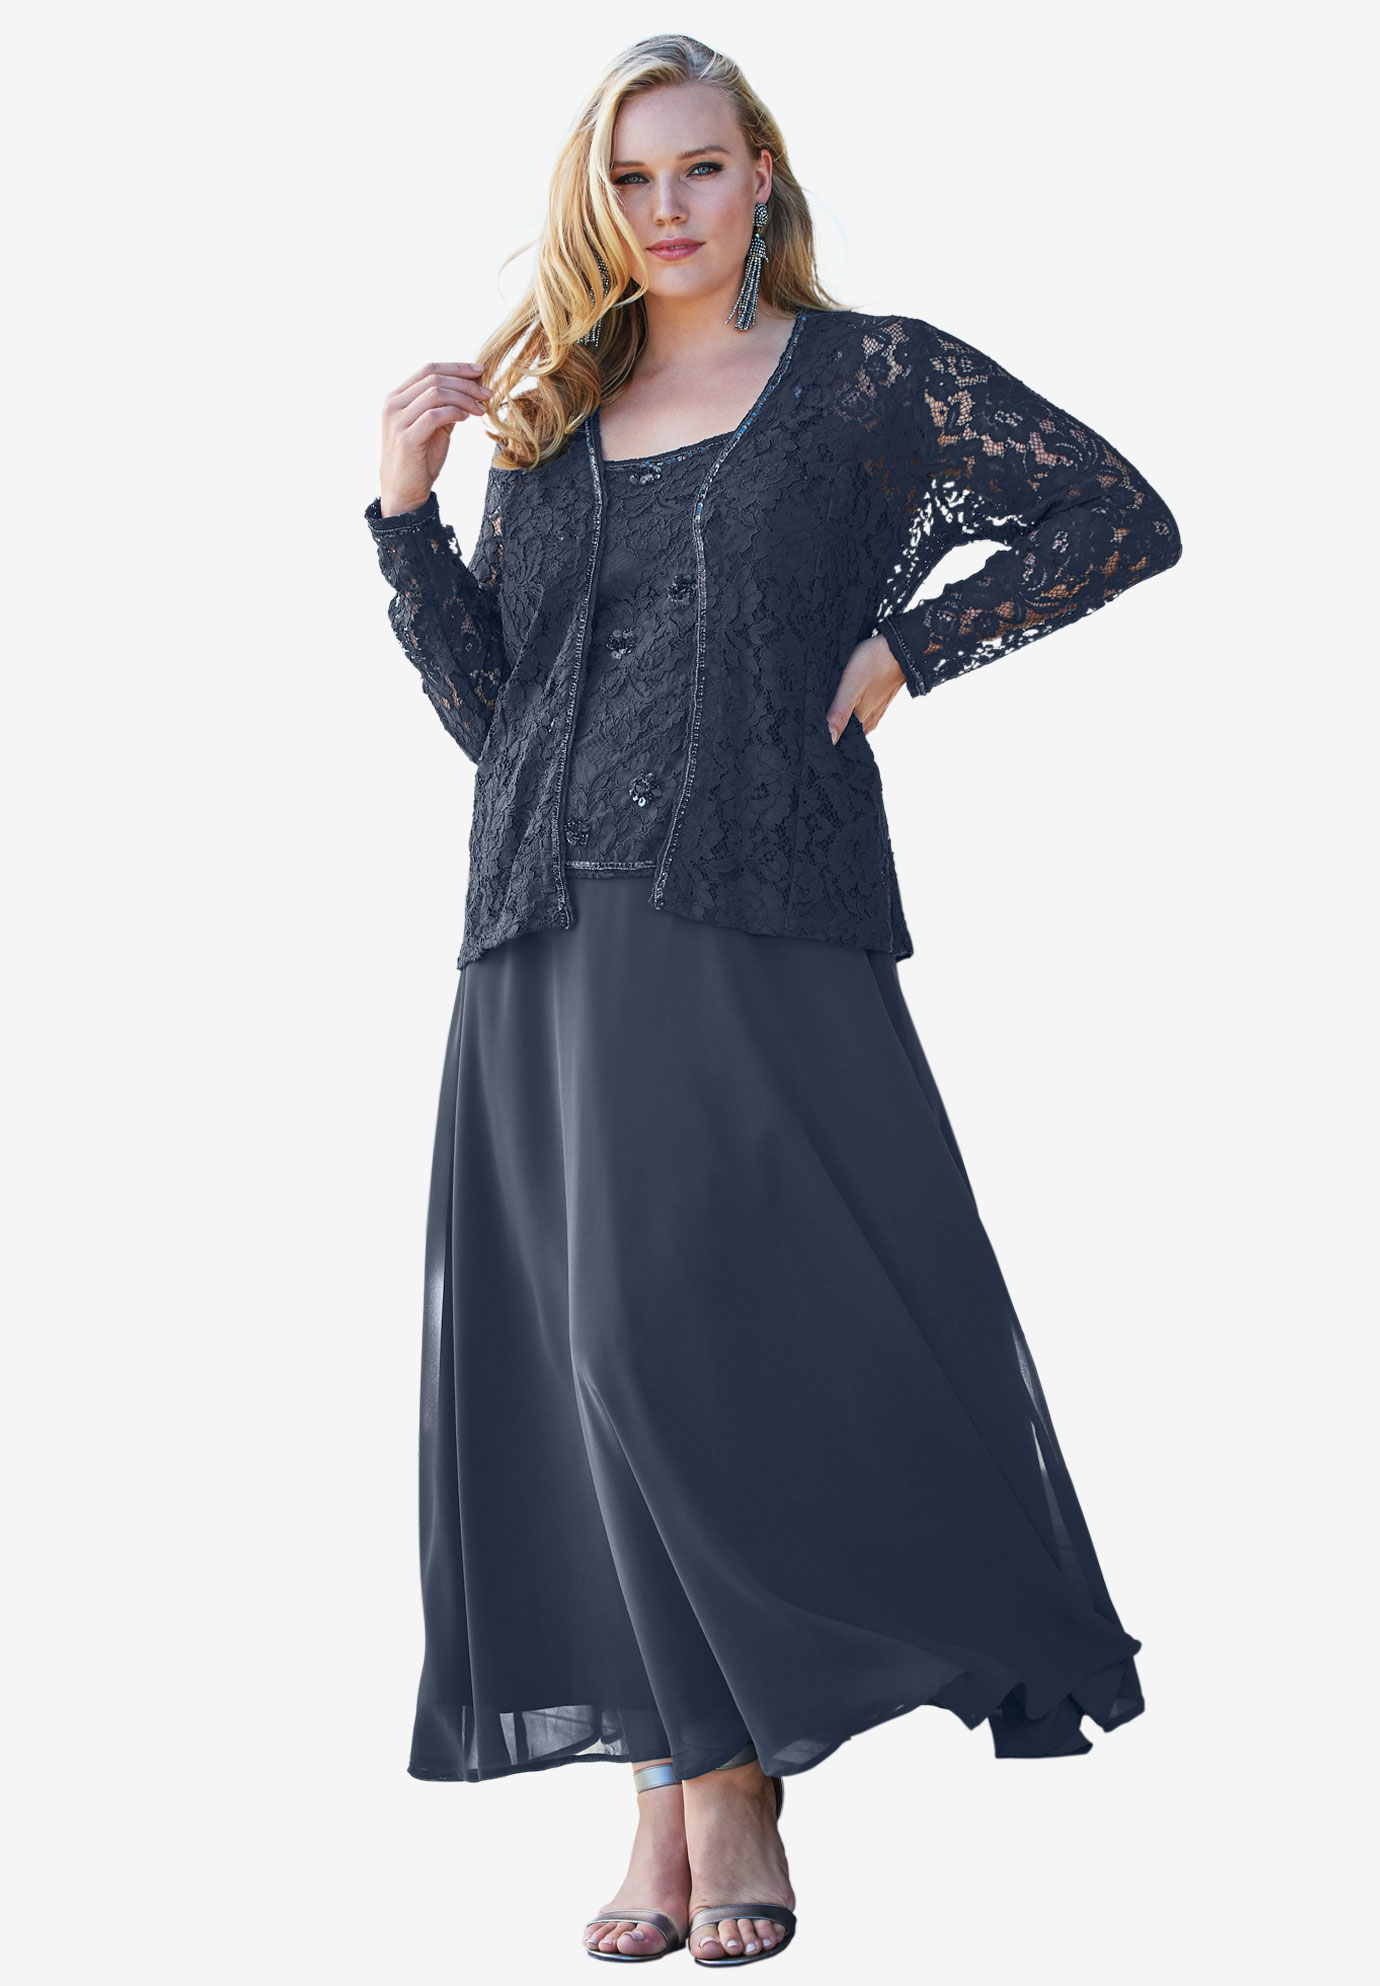 Beaded Lace Jacket Dress Plus Size Special Occasion Full Beauty